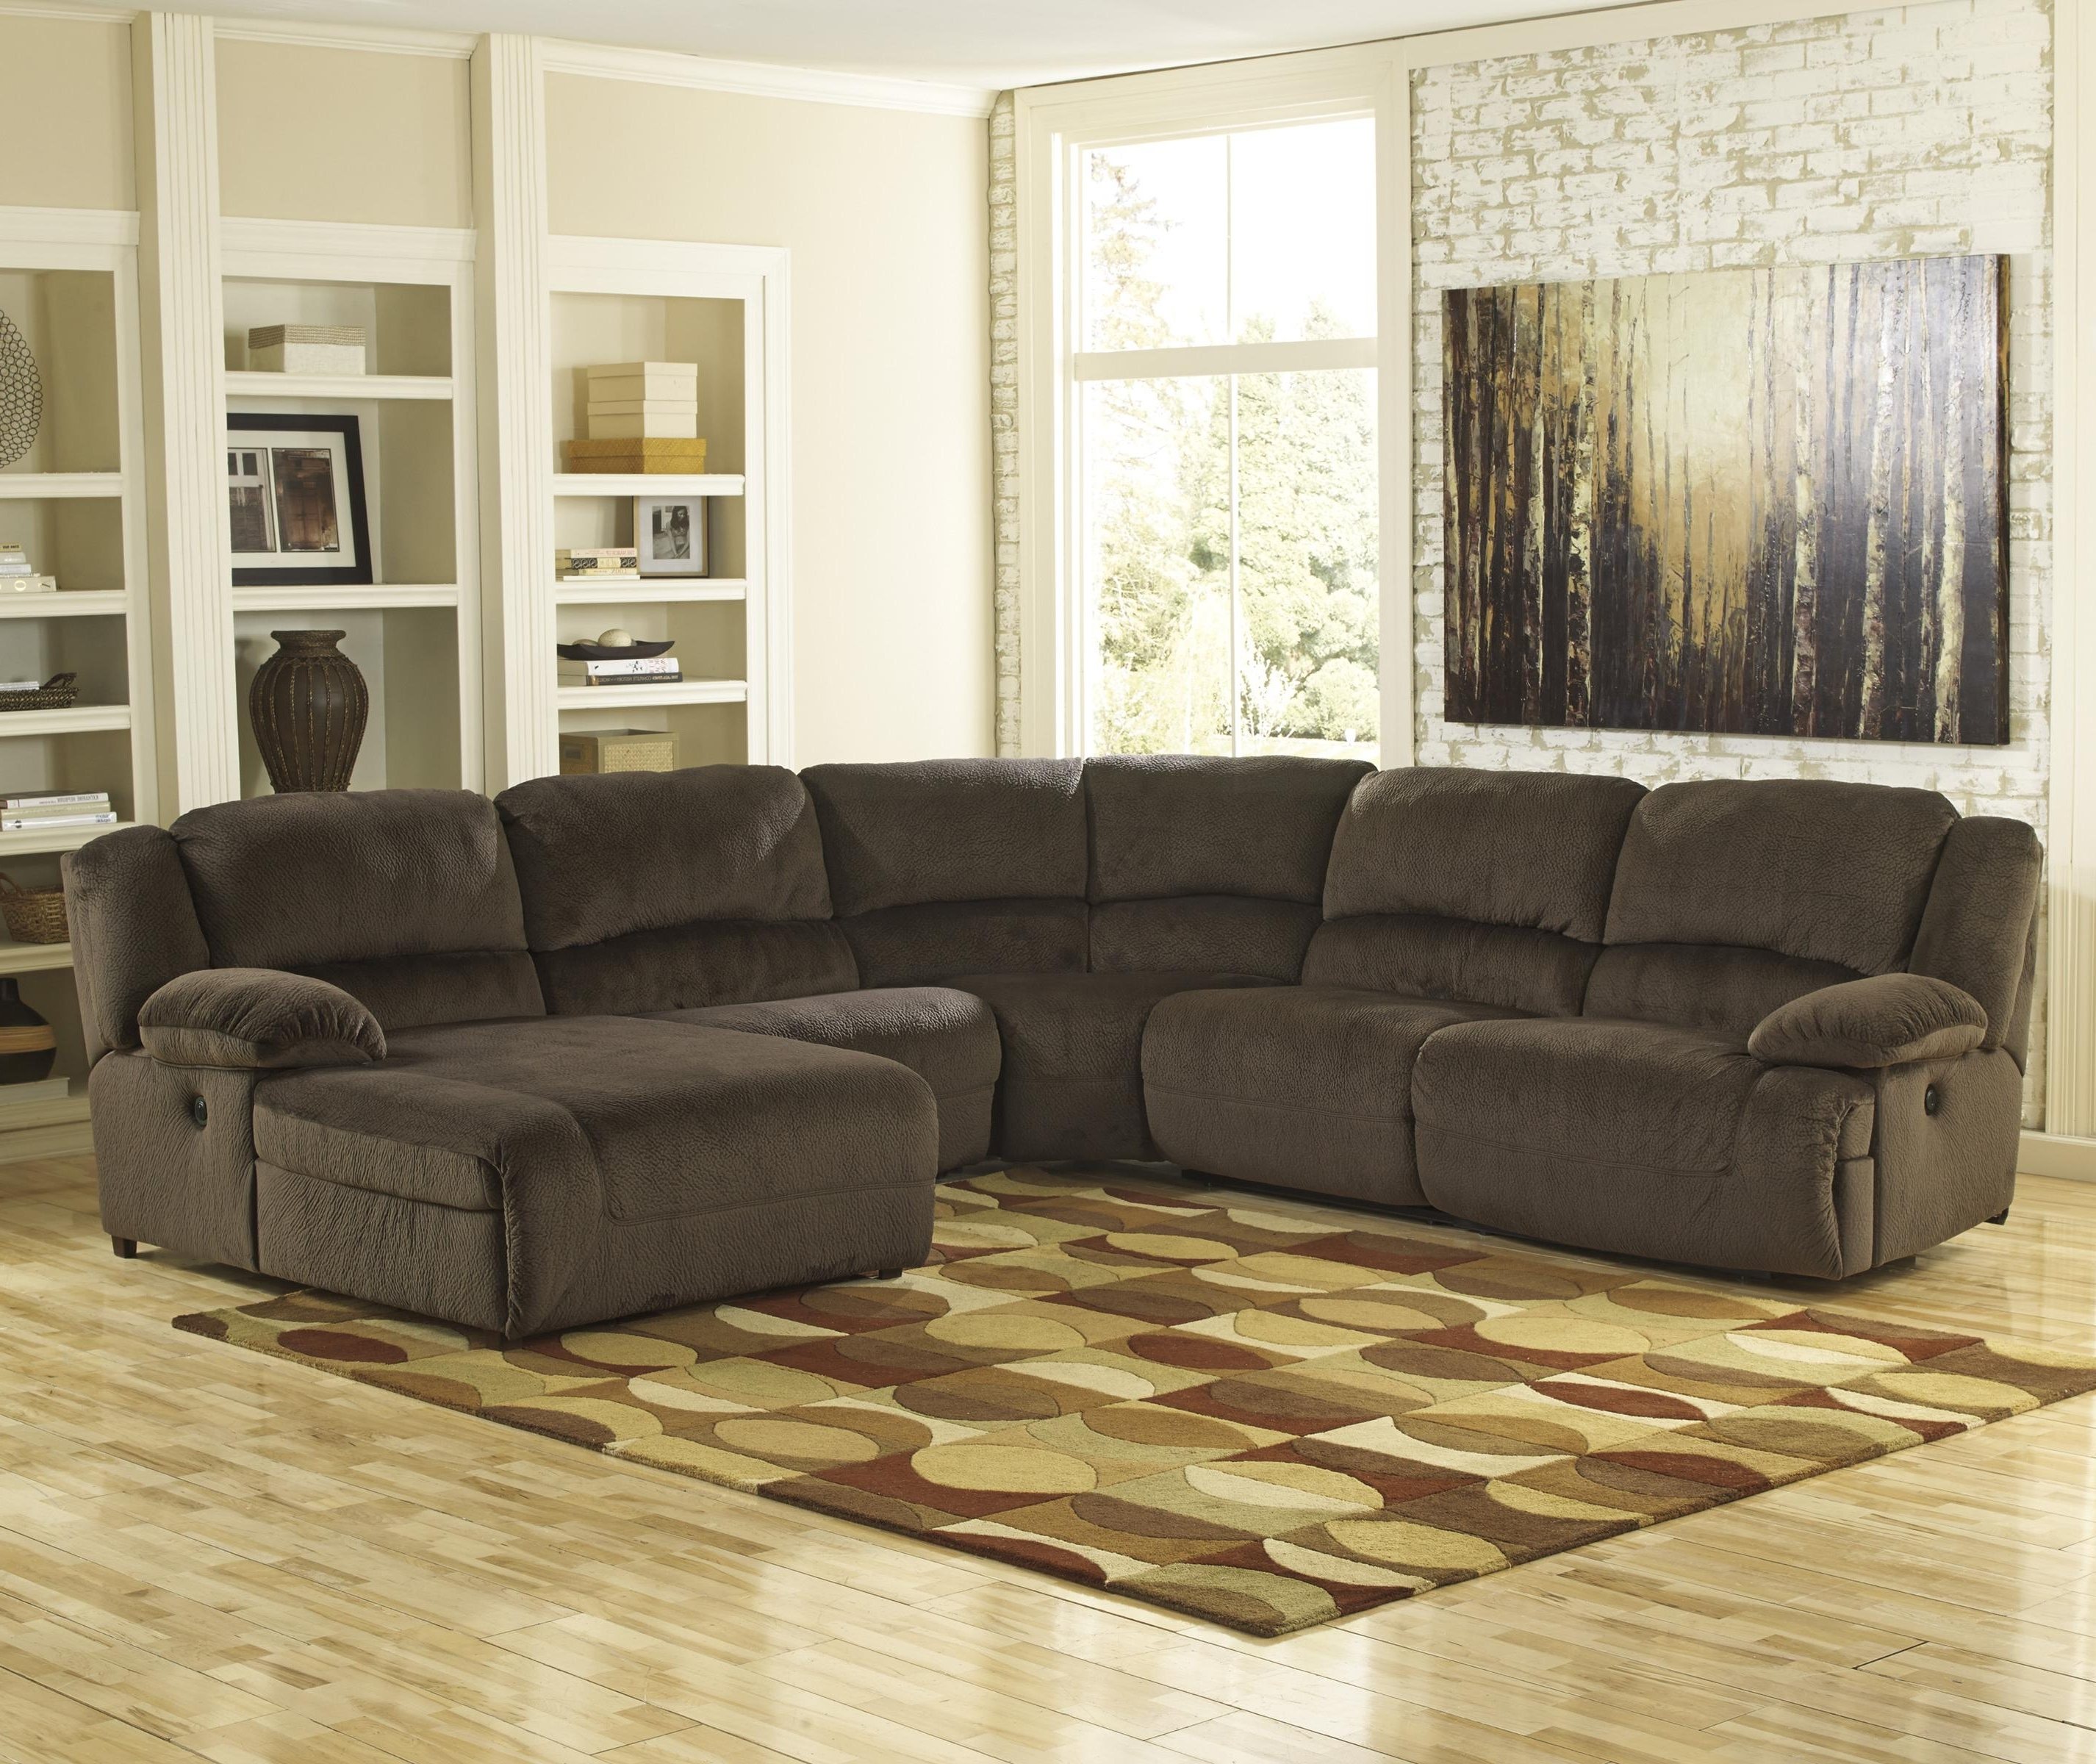 Most Popular Ashley Furniture Sectionals With Chaise Regarding Ashley Signature Design Toletta – Chocolate Reclining Sectional (View 10 of 15)